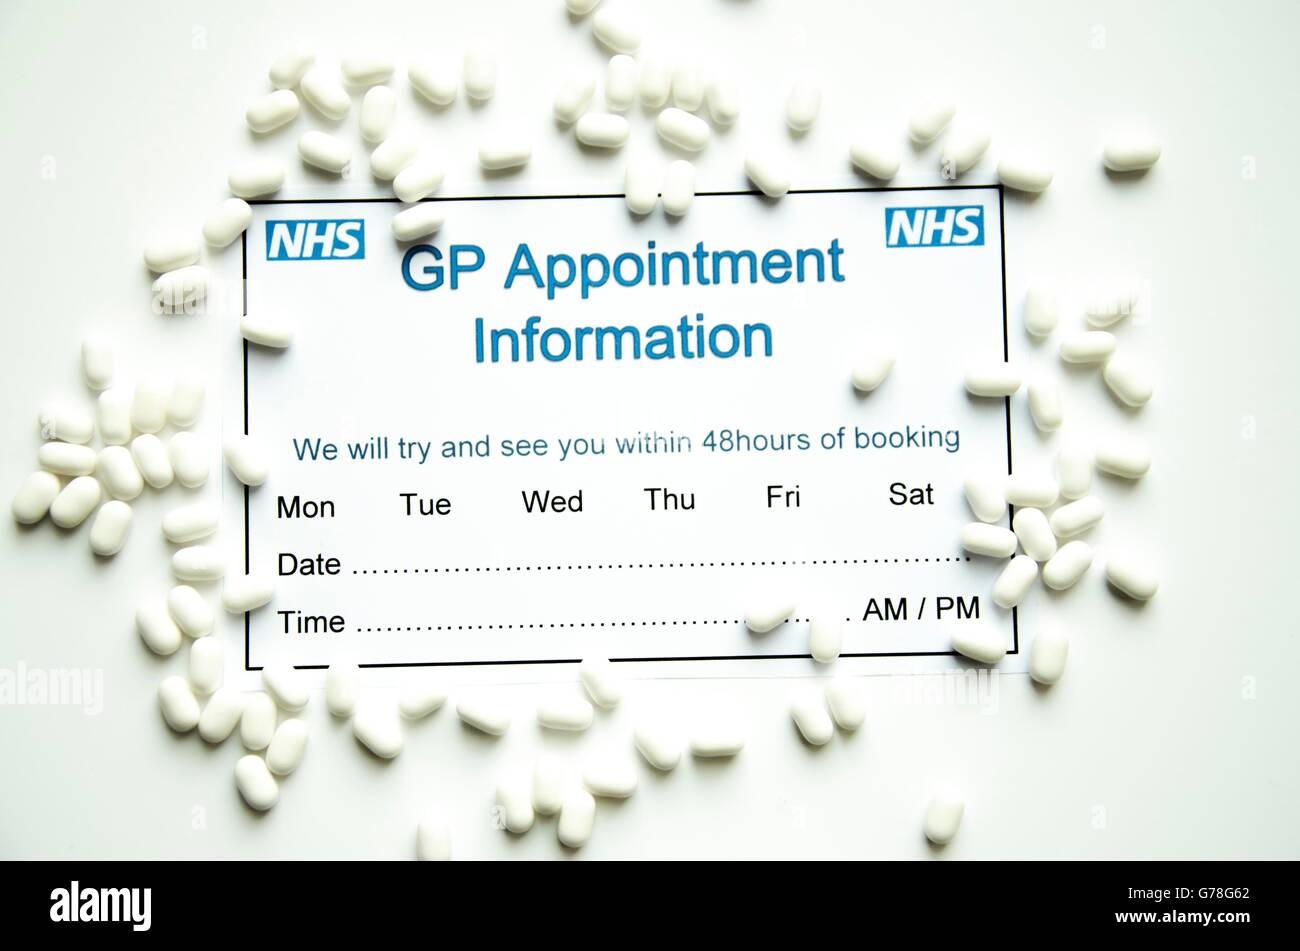 gp appointment slip for nhs with pills stock photo 107753130 alamy